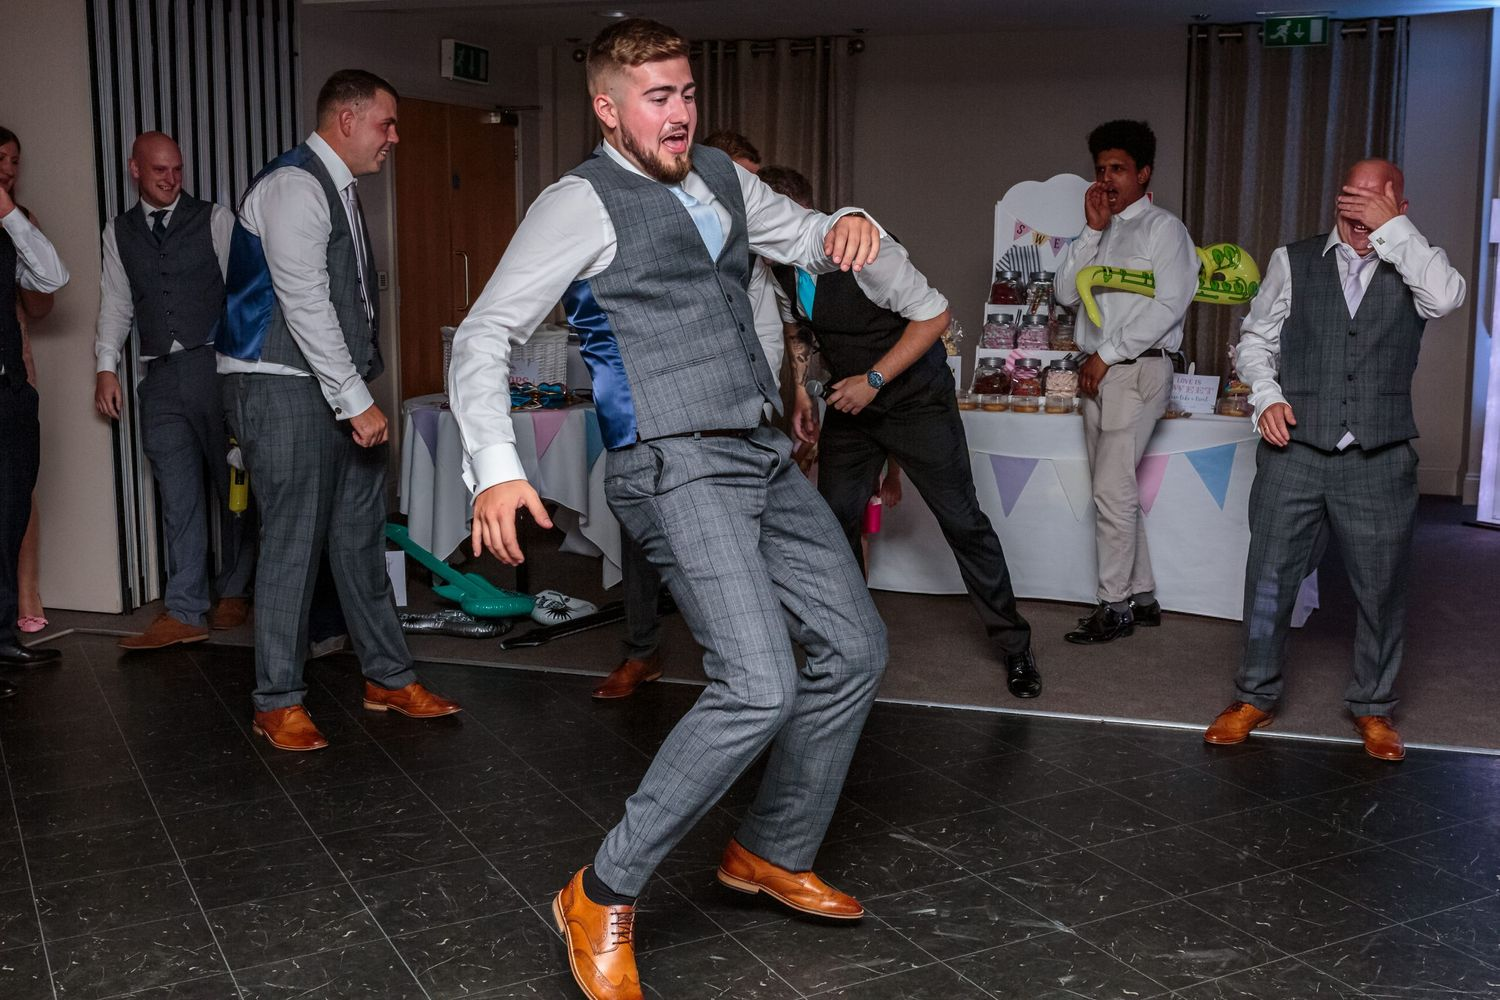 one of the groomsmen takes to the floor for his dance solo knees bent leaning back and arms outstretched